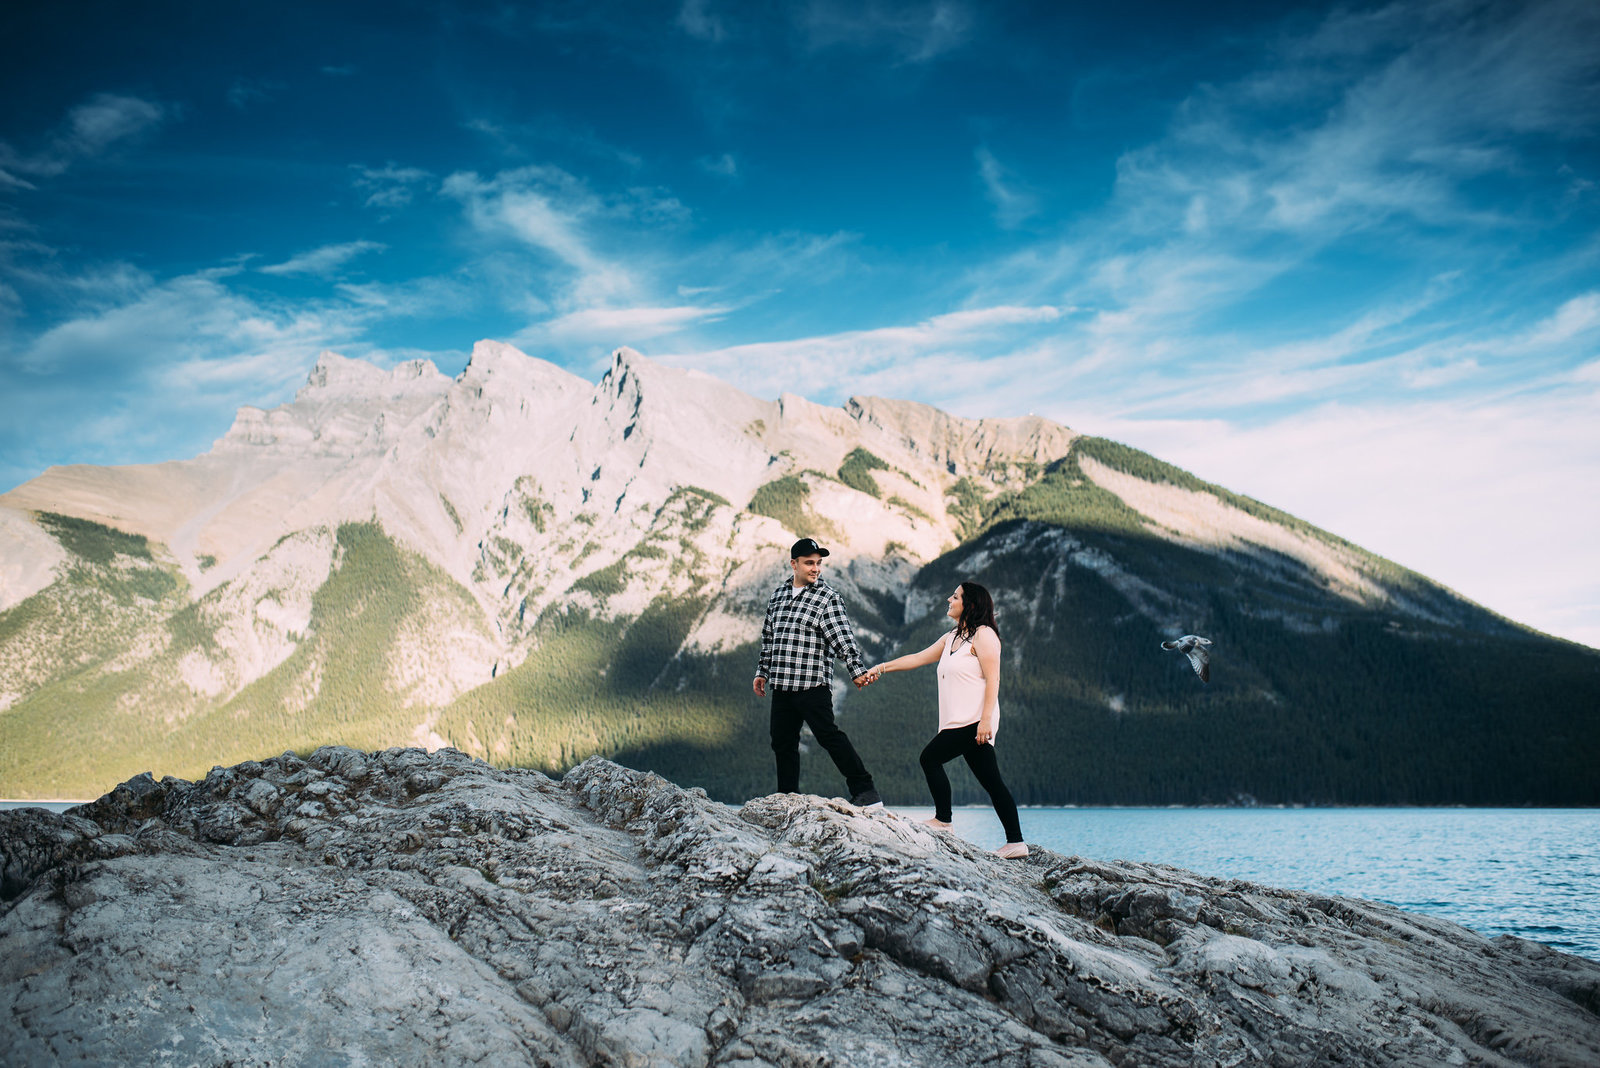 lethbridge canmore banff southern alberta photographer {J&S} (8 of 10)